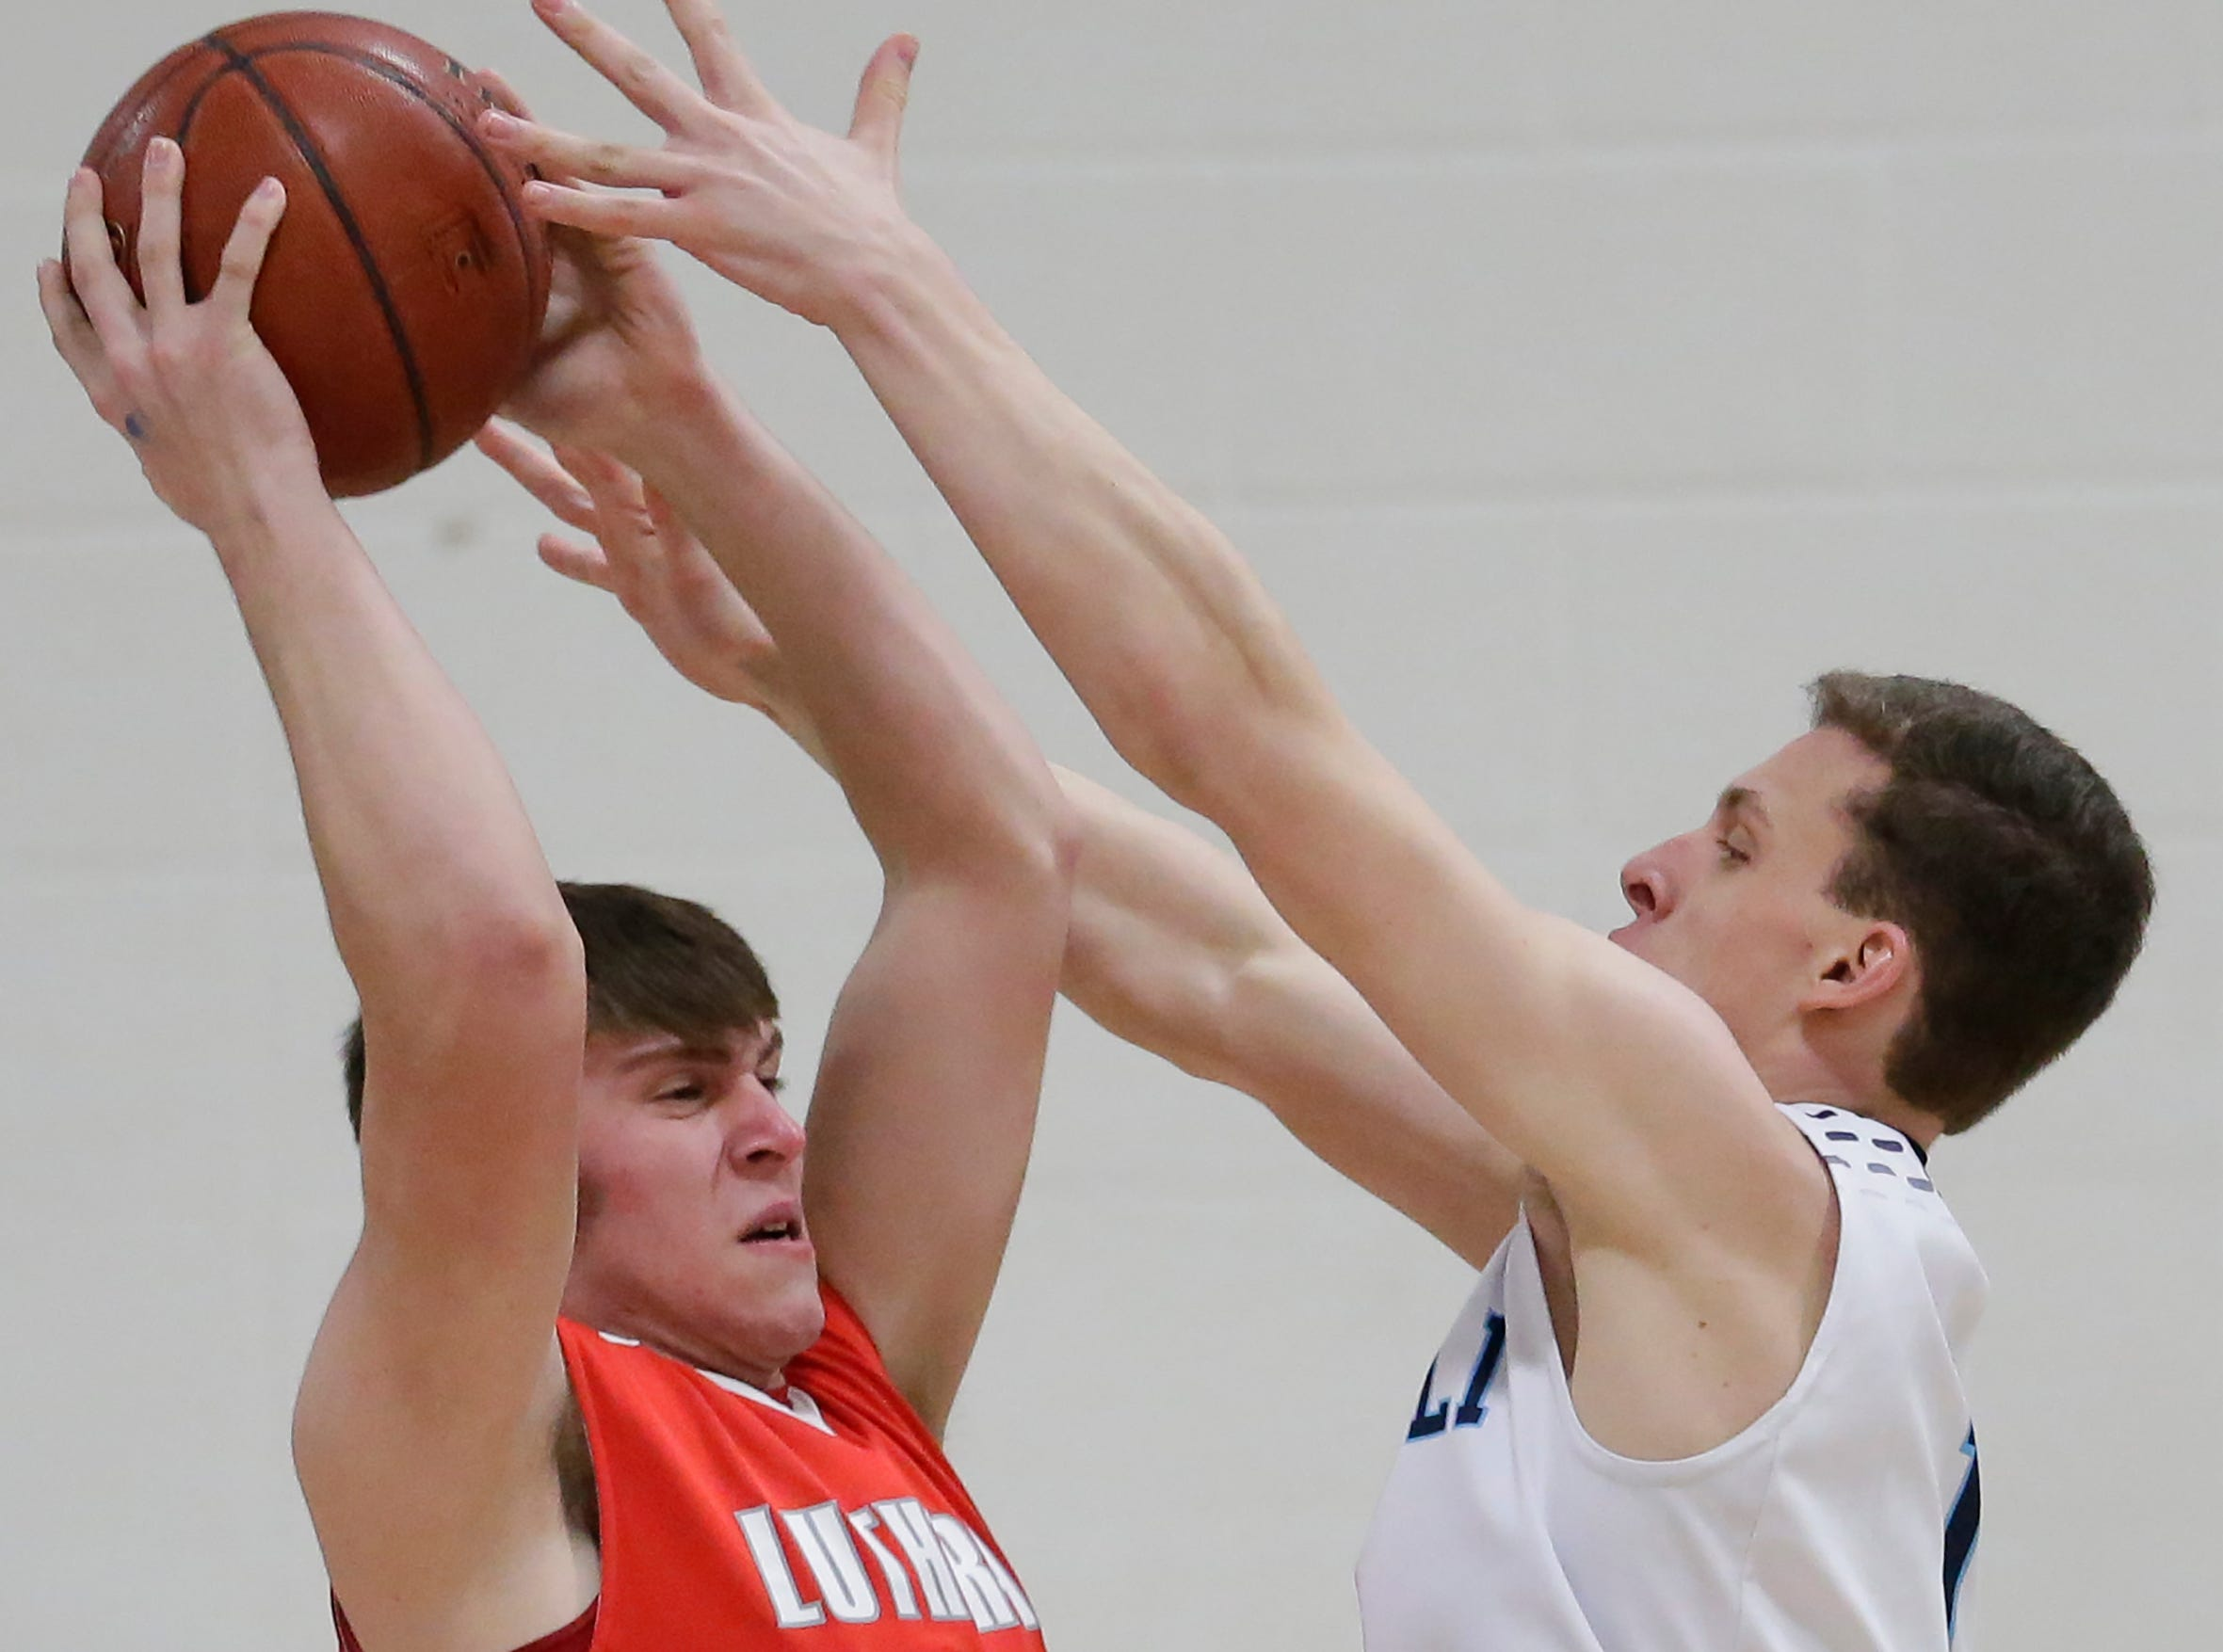 Manitowoc Lutheran's Korey Garceau (40) rebounds against Roncalli during a WIAA Division 4 regional semifinal game at Roncalli High School Friday, March 1, 2019, in Manitowoc, Wis. Joshua Clark/USA TODAY NETWORK-Wisconsin